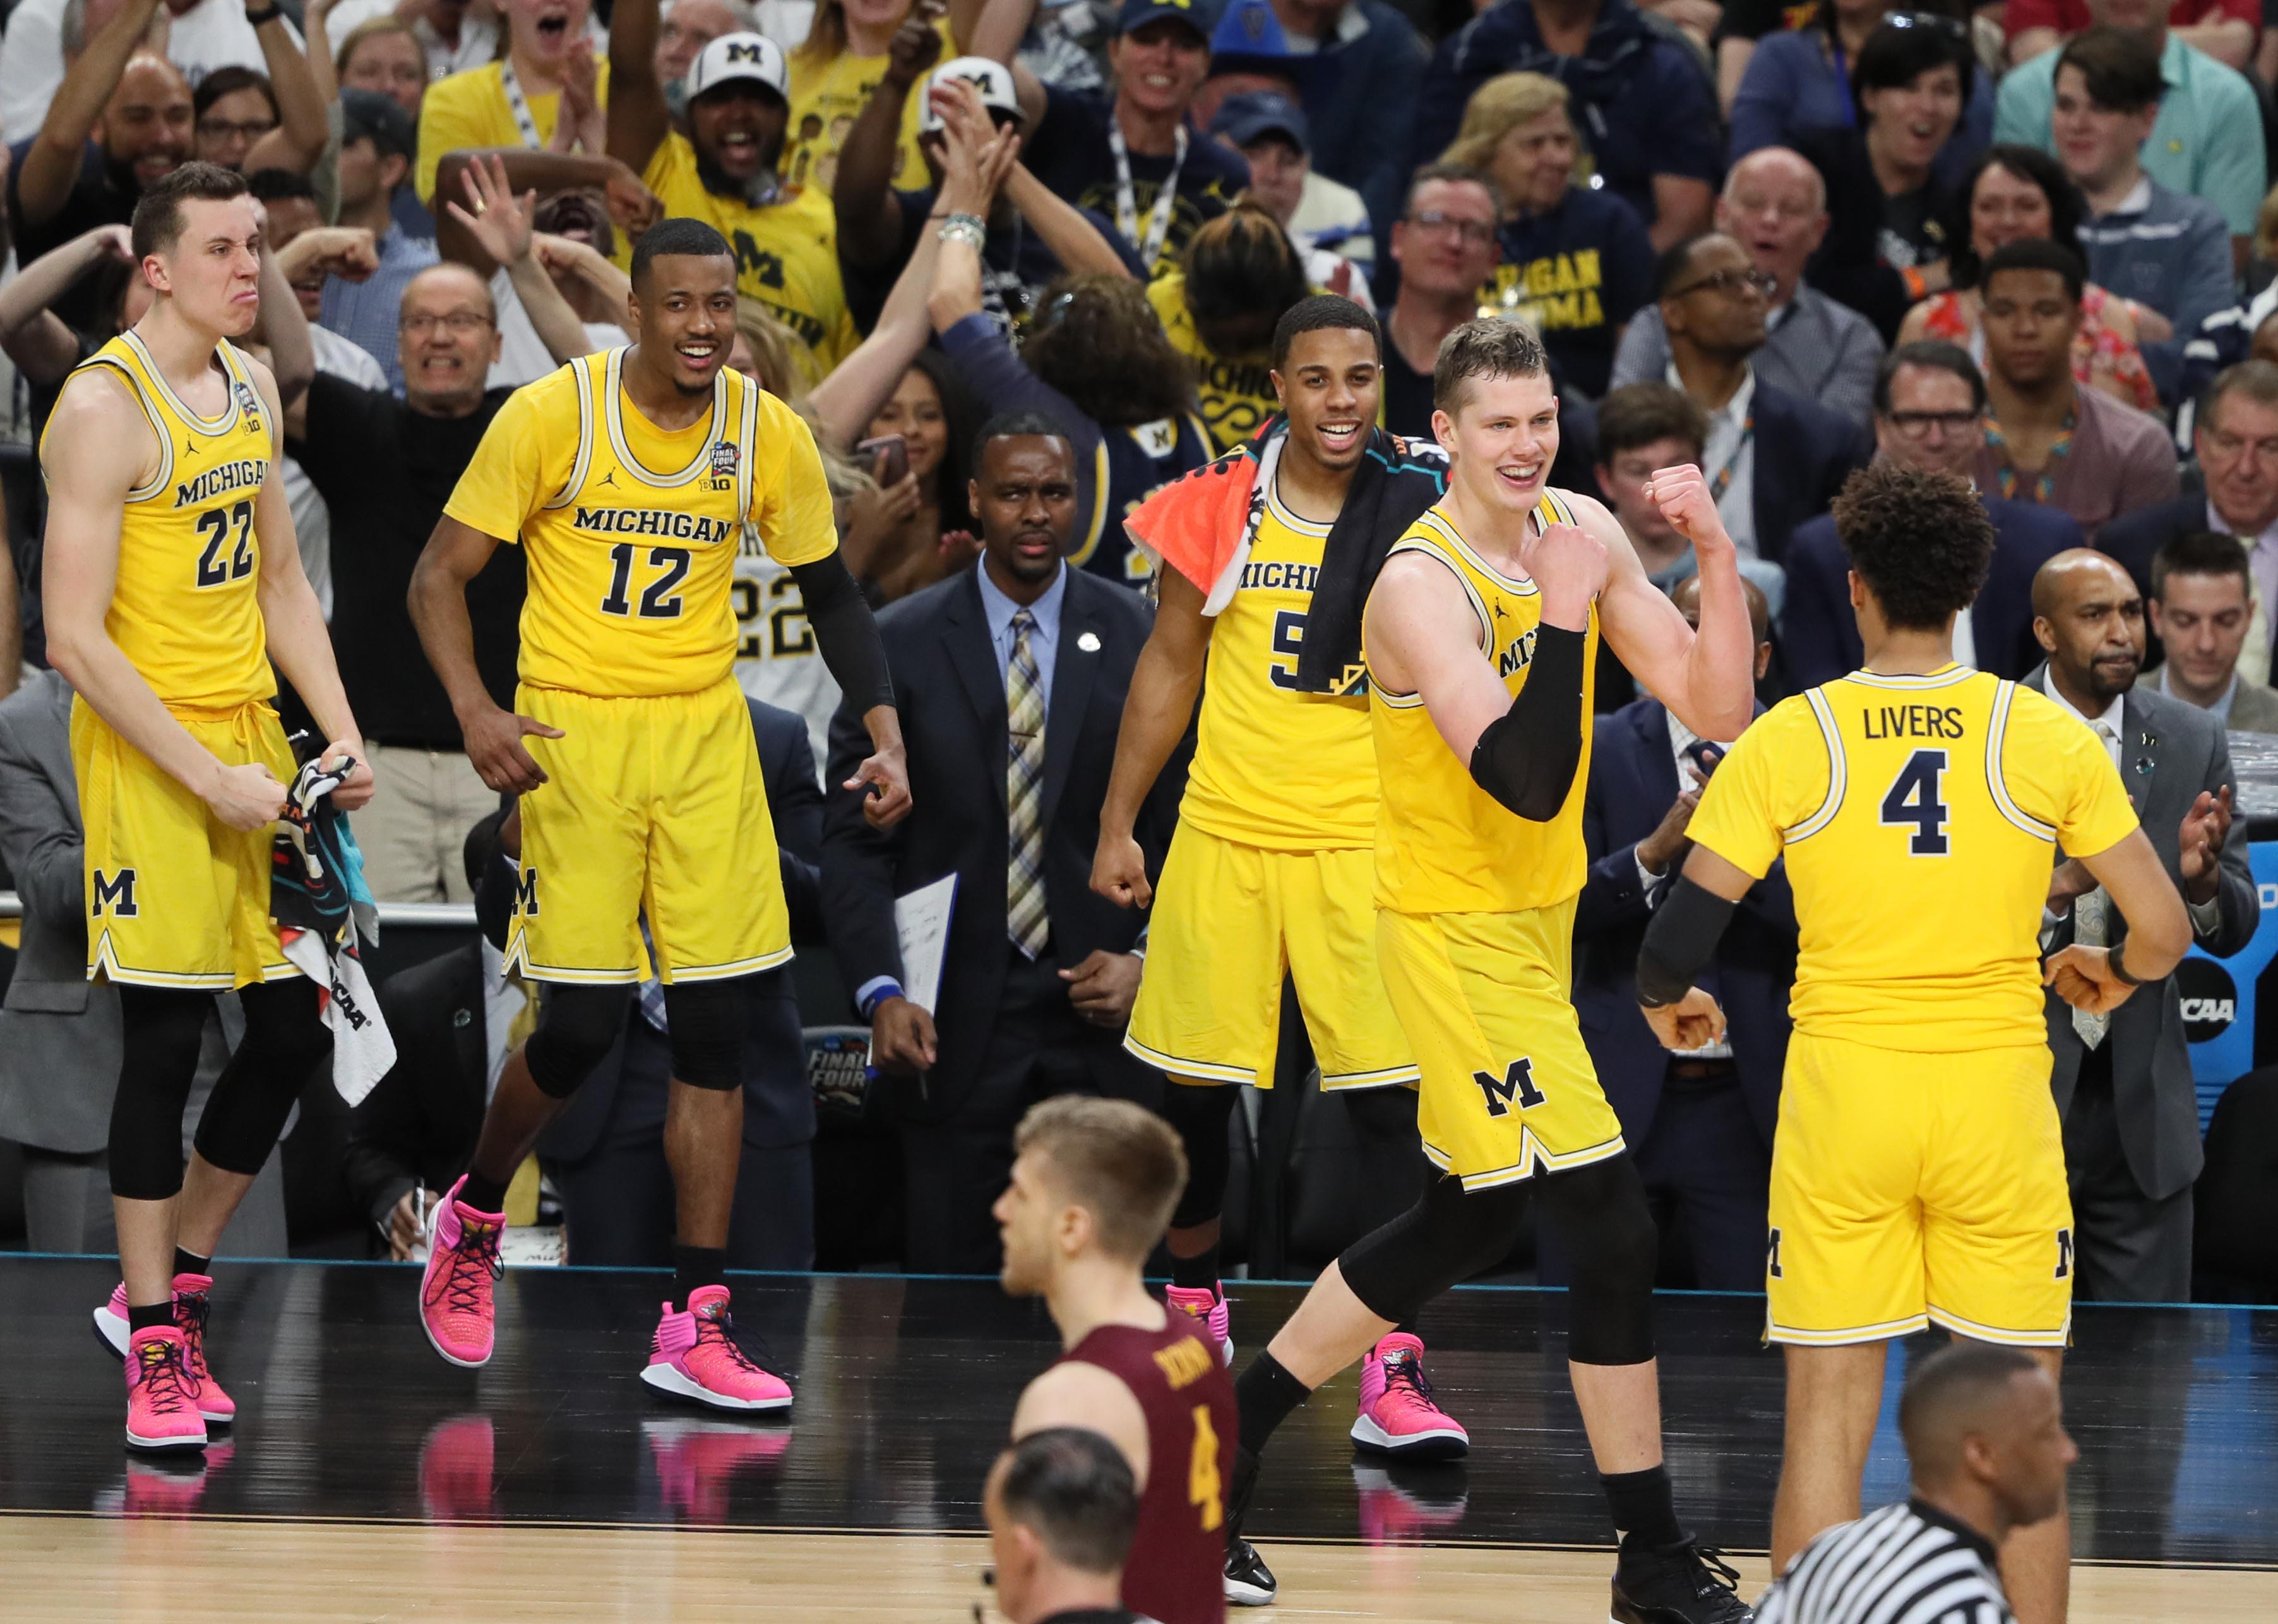 How Michigan S Scout Team Has Help Led The Team To Success